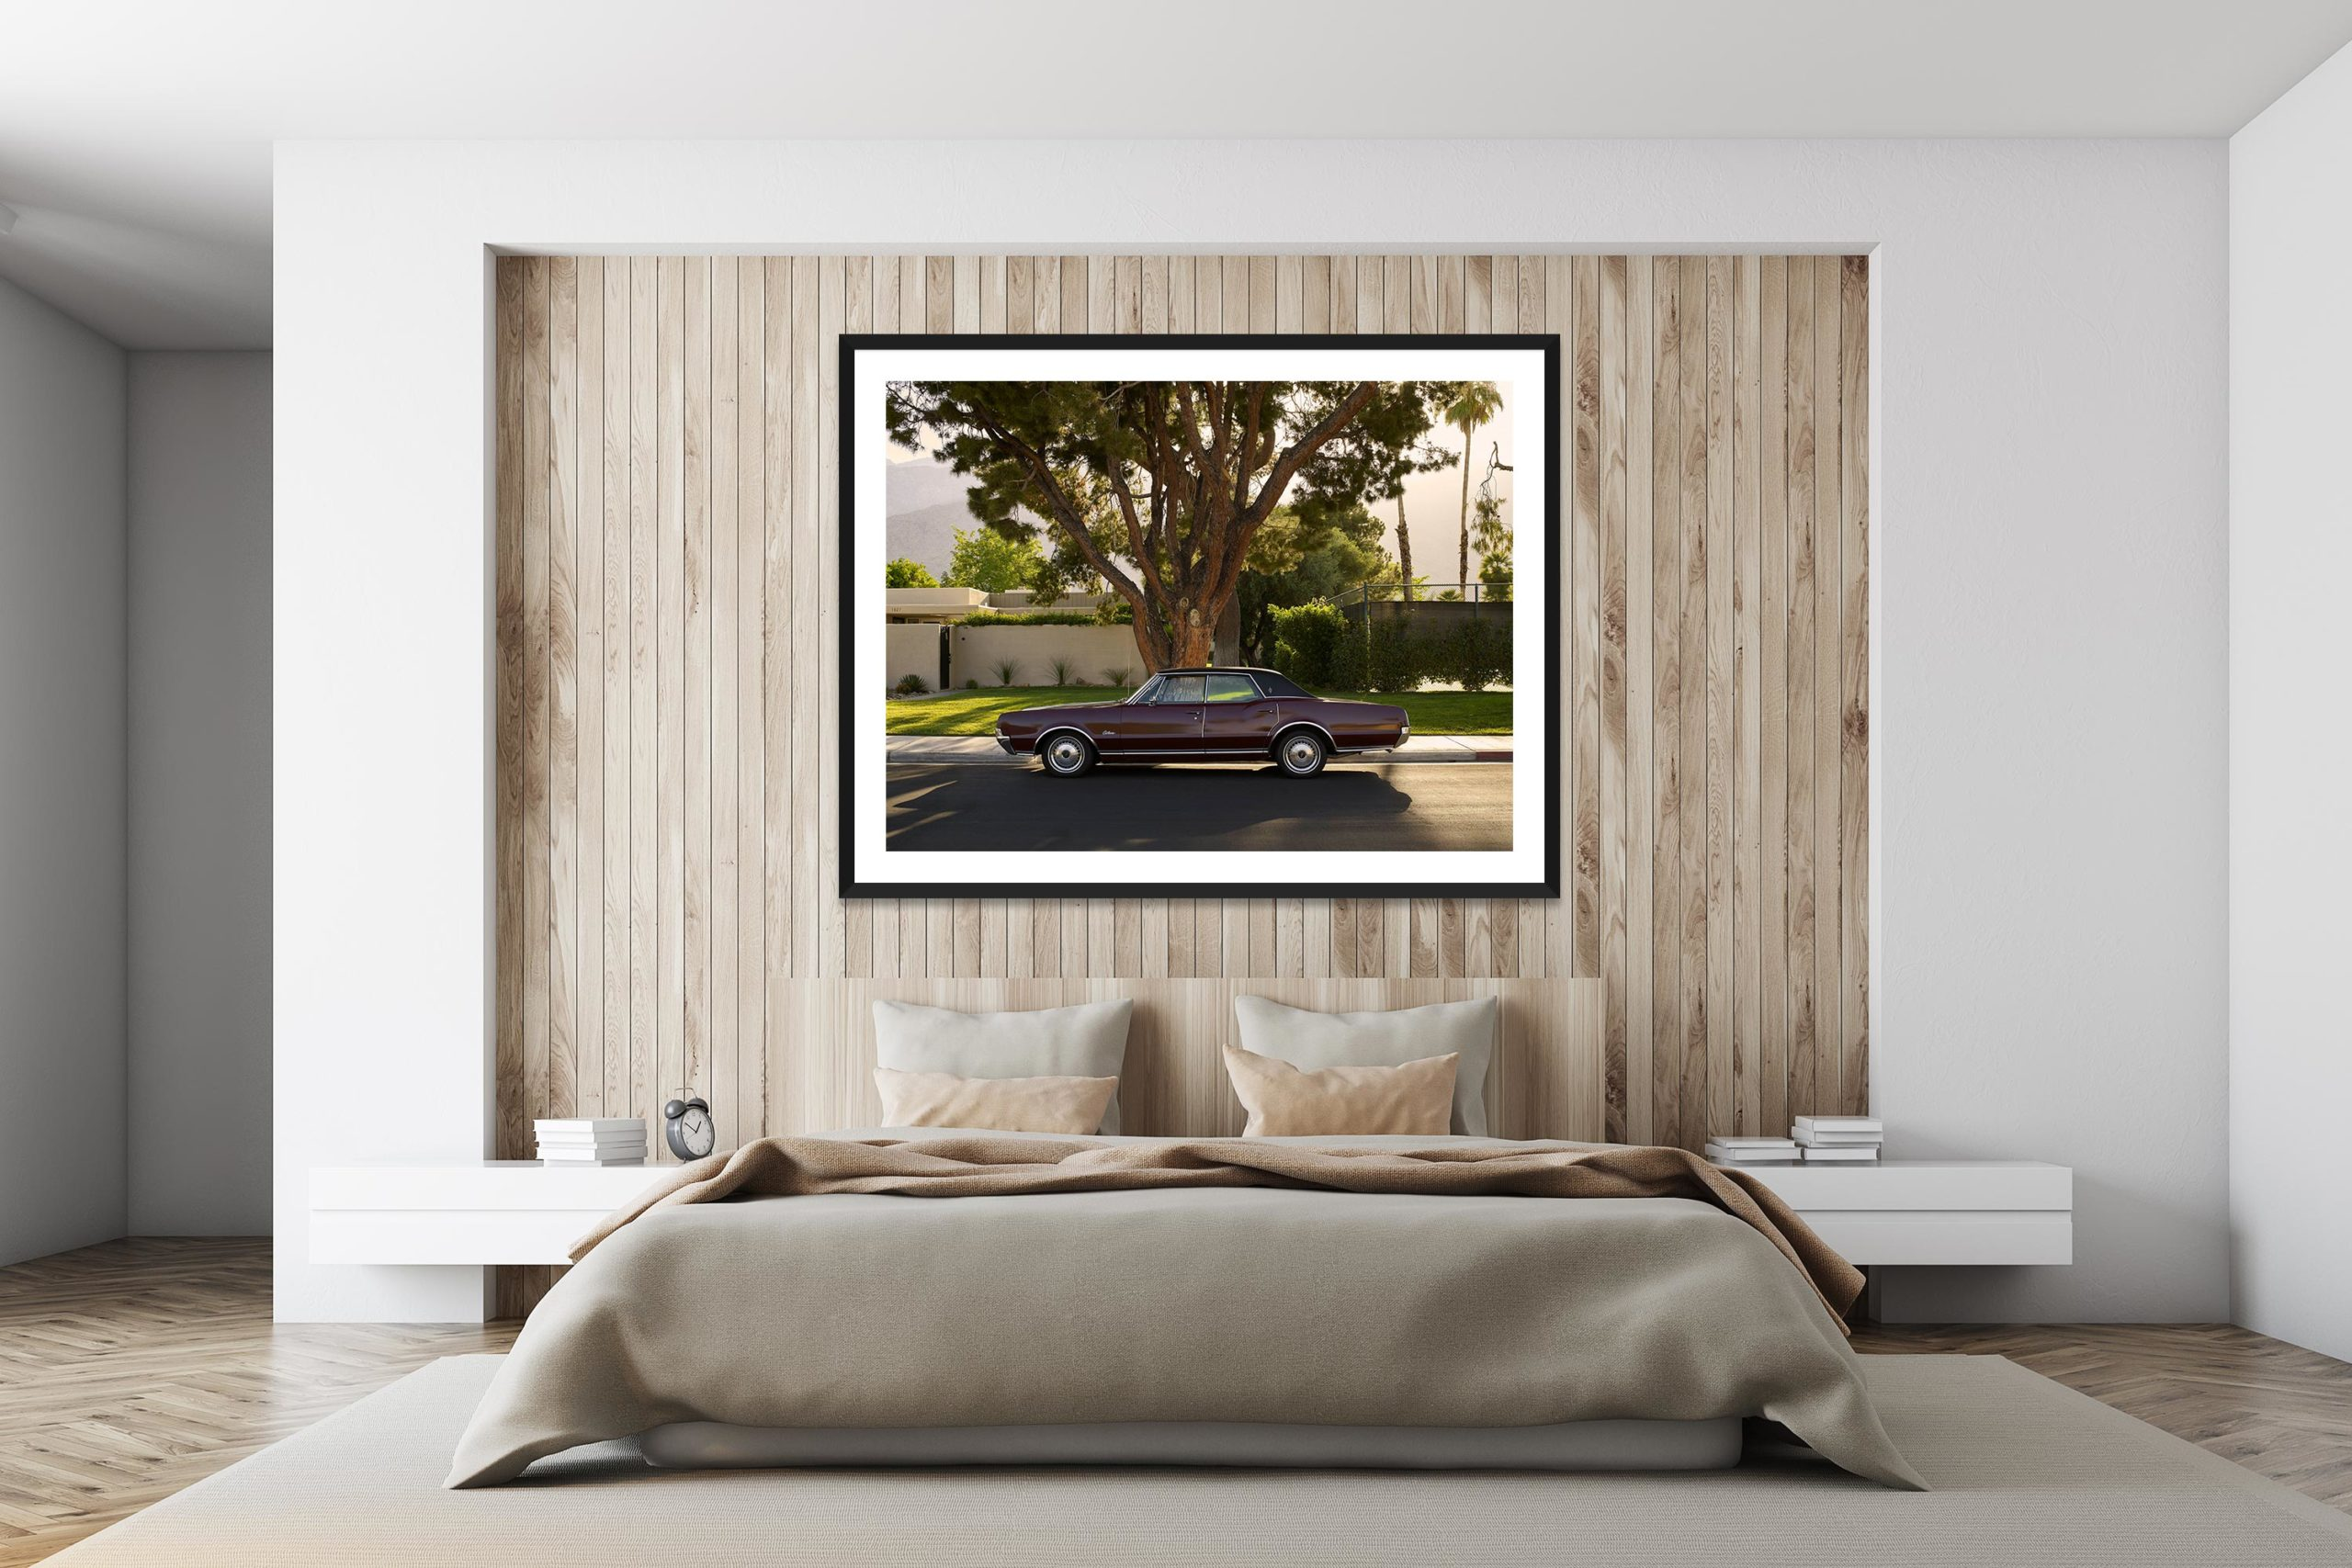 Olds Mobile - Black Frame - I Heart Palm Springs Collection - Fine Art Photography by Toby Dixon